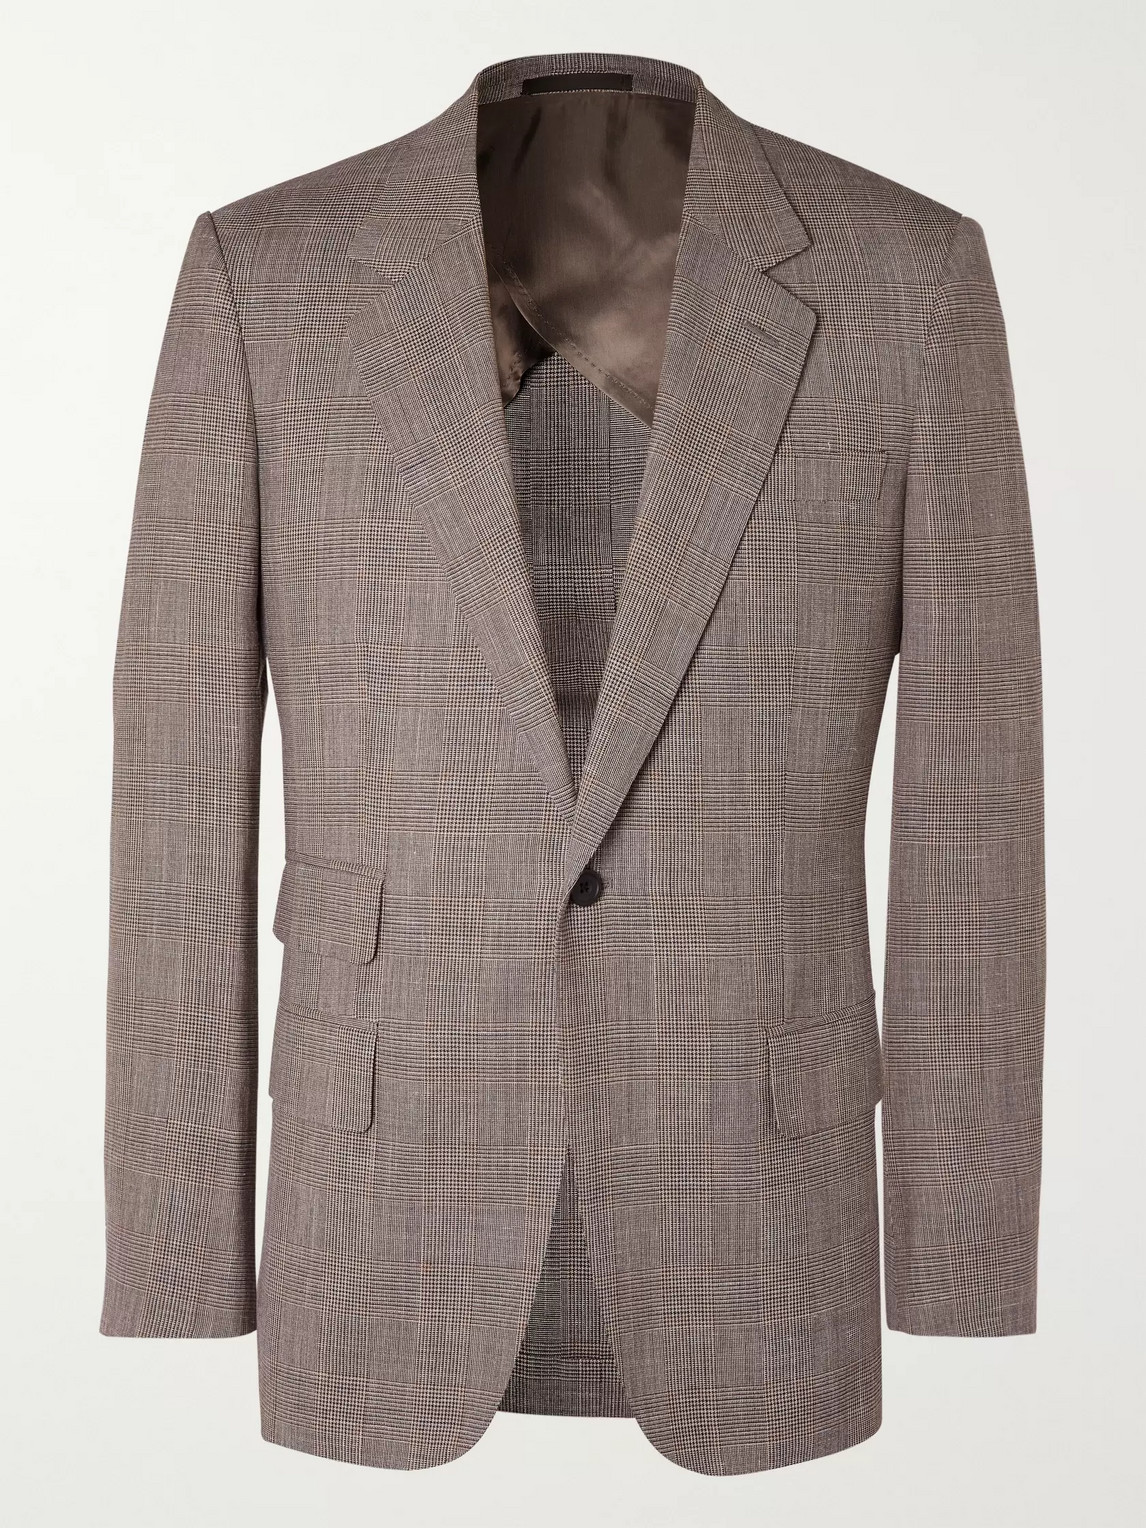 Kingsman Prince Of Wales Checked Wool, Silk And Linen-blend Suit Jacket In Brown